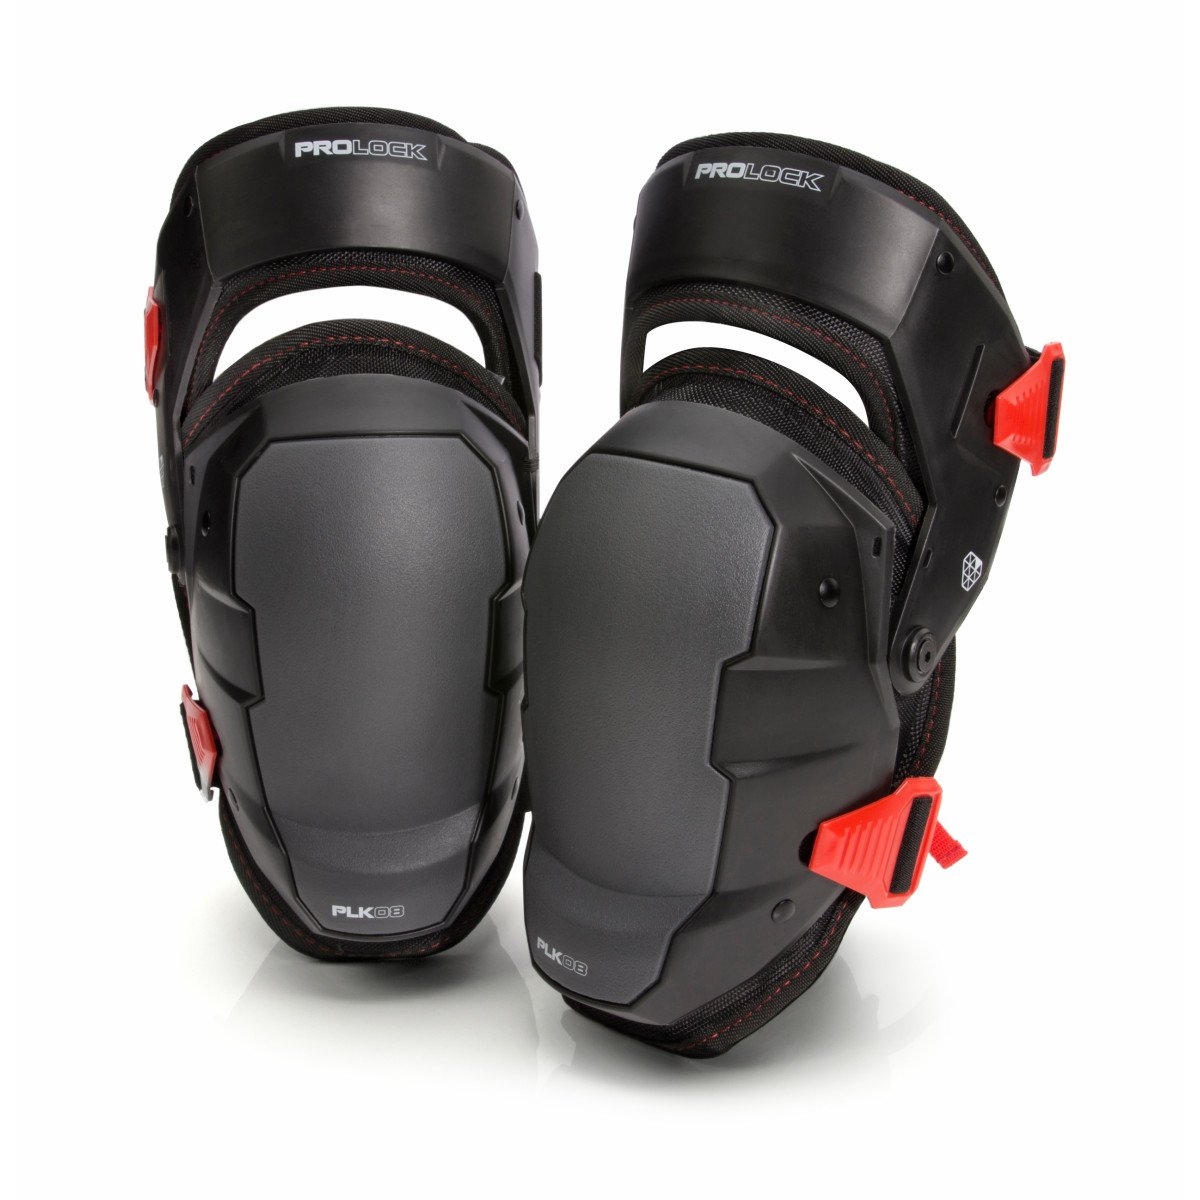 Impact-Absorbing Gel Knee Pads with Thigh Stabilization by Prolock, Ideal for Flooring/Roofing, Adjustable (1 pair) by PROLOCK